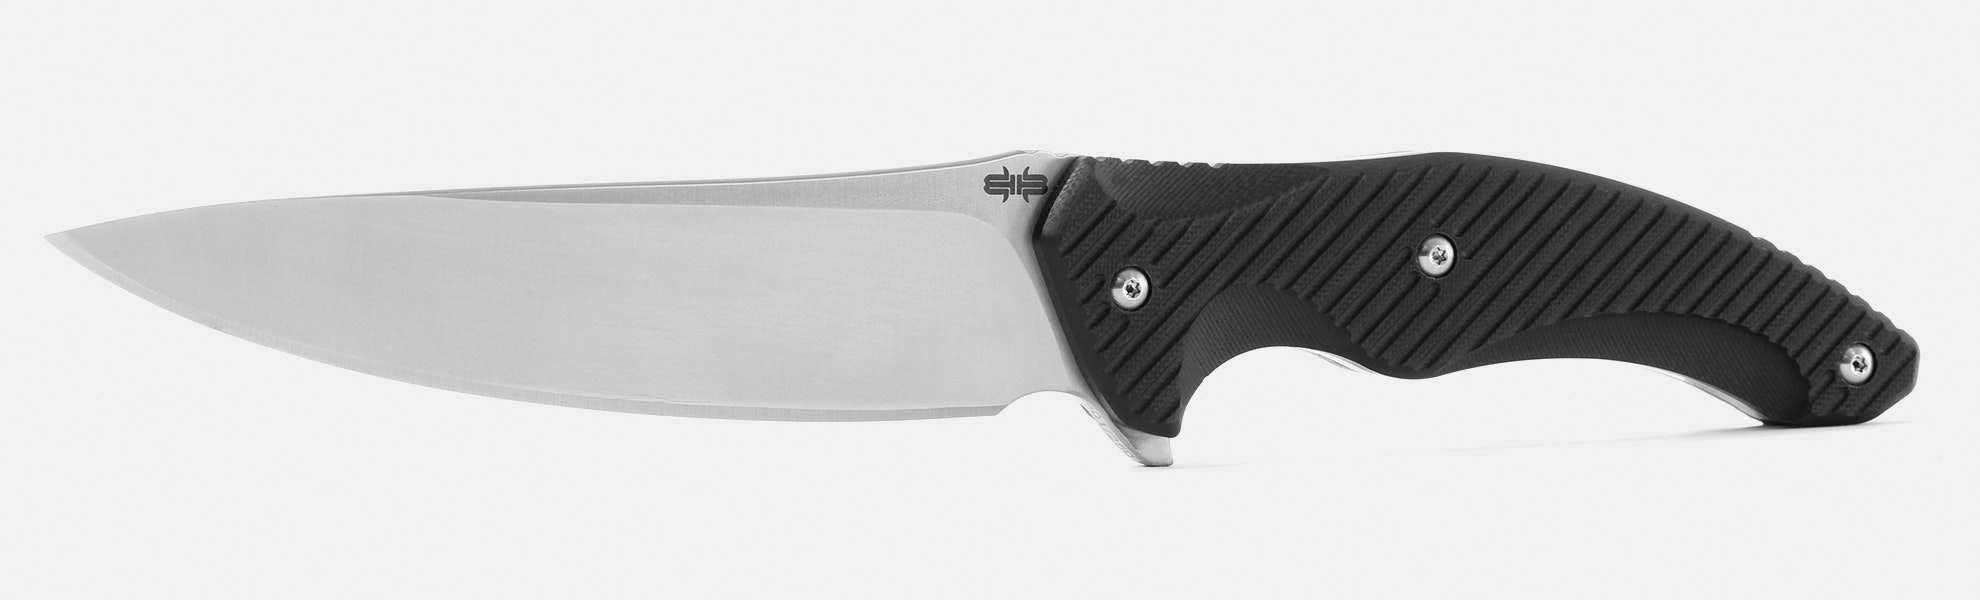 Brous Blades T5 Fixed Blade Knife (D2 Steel)